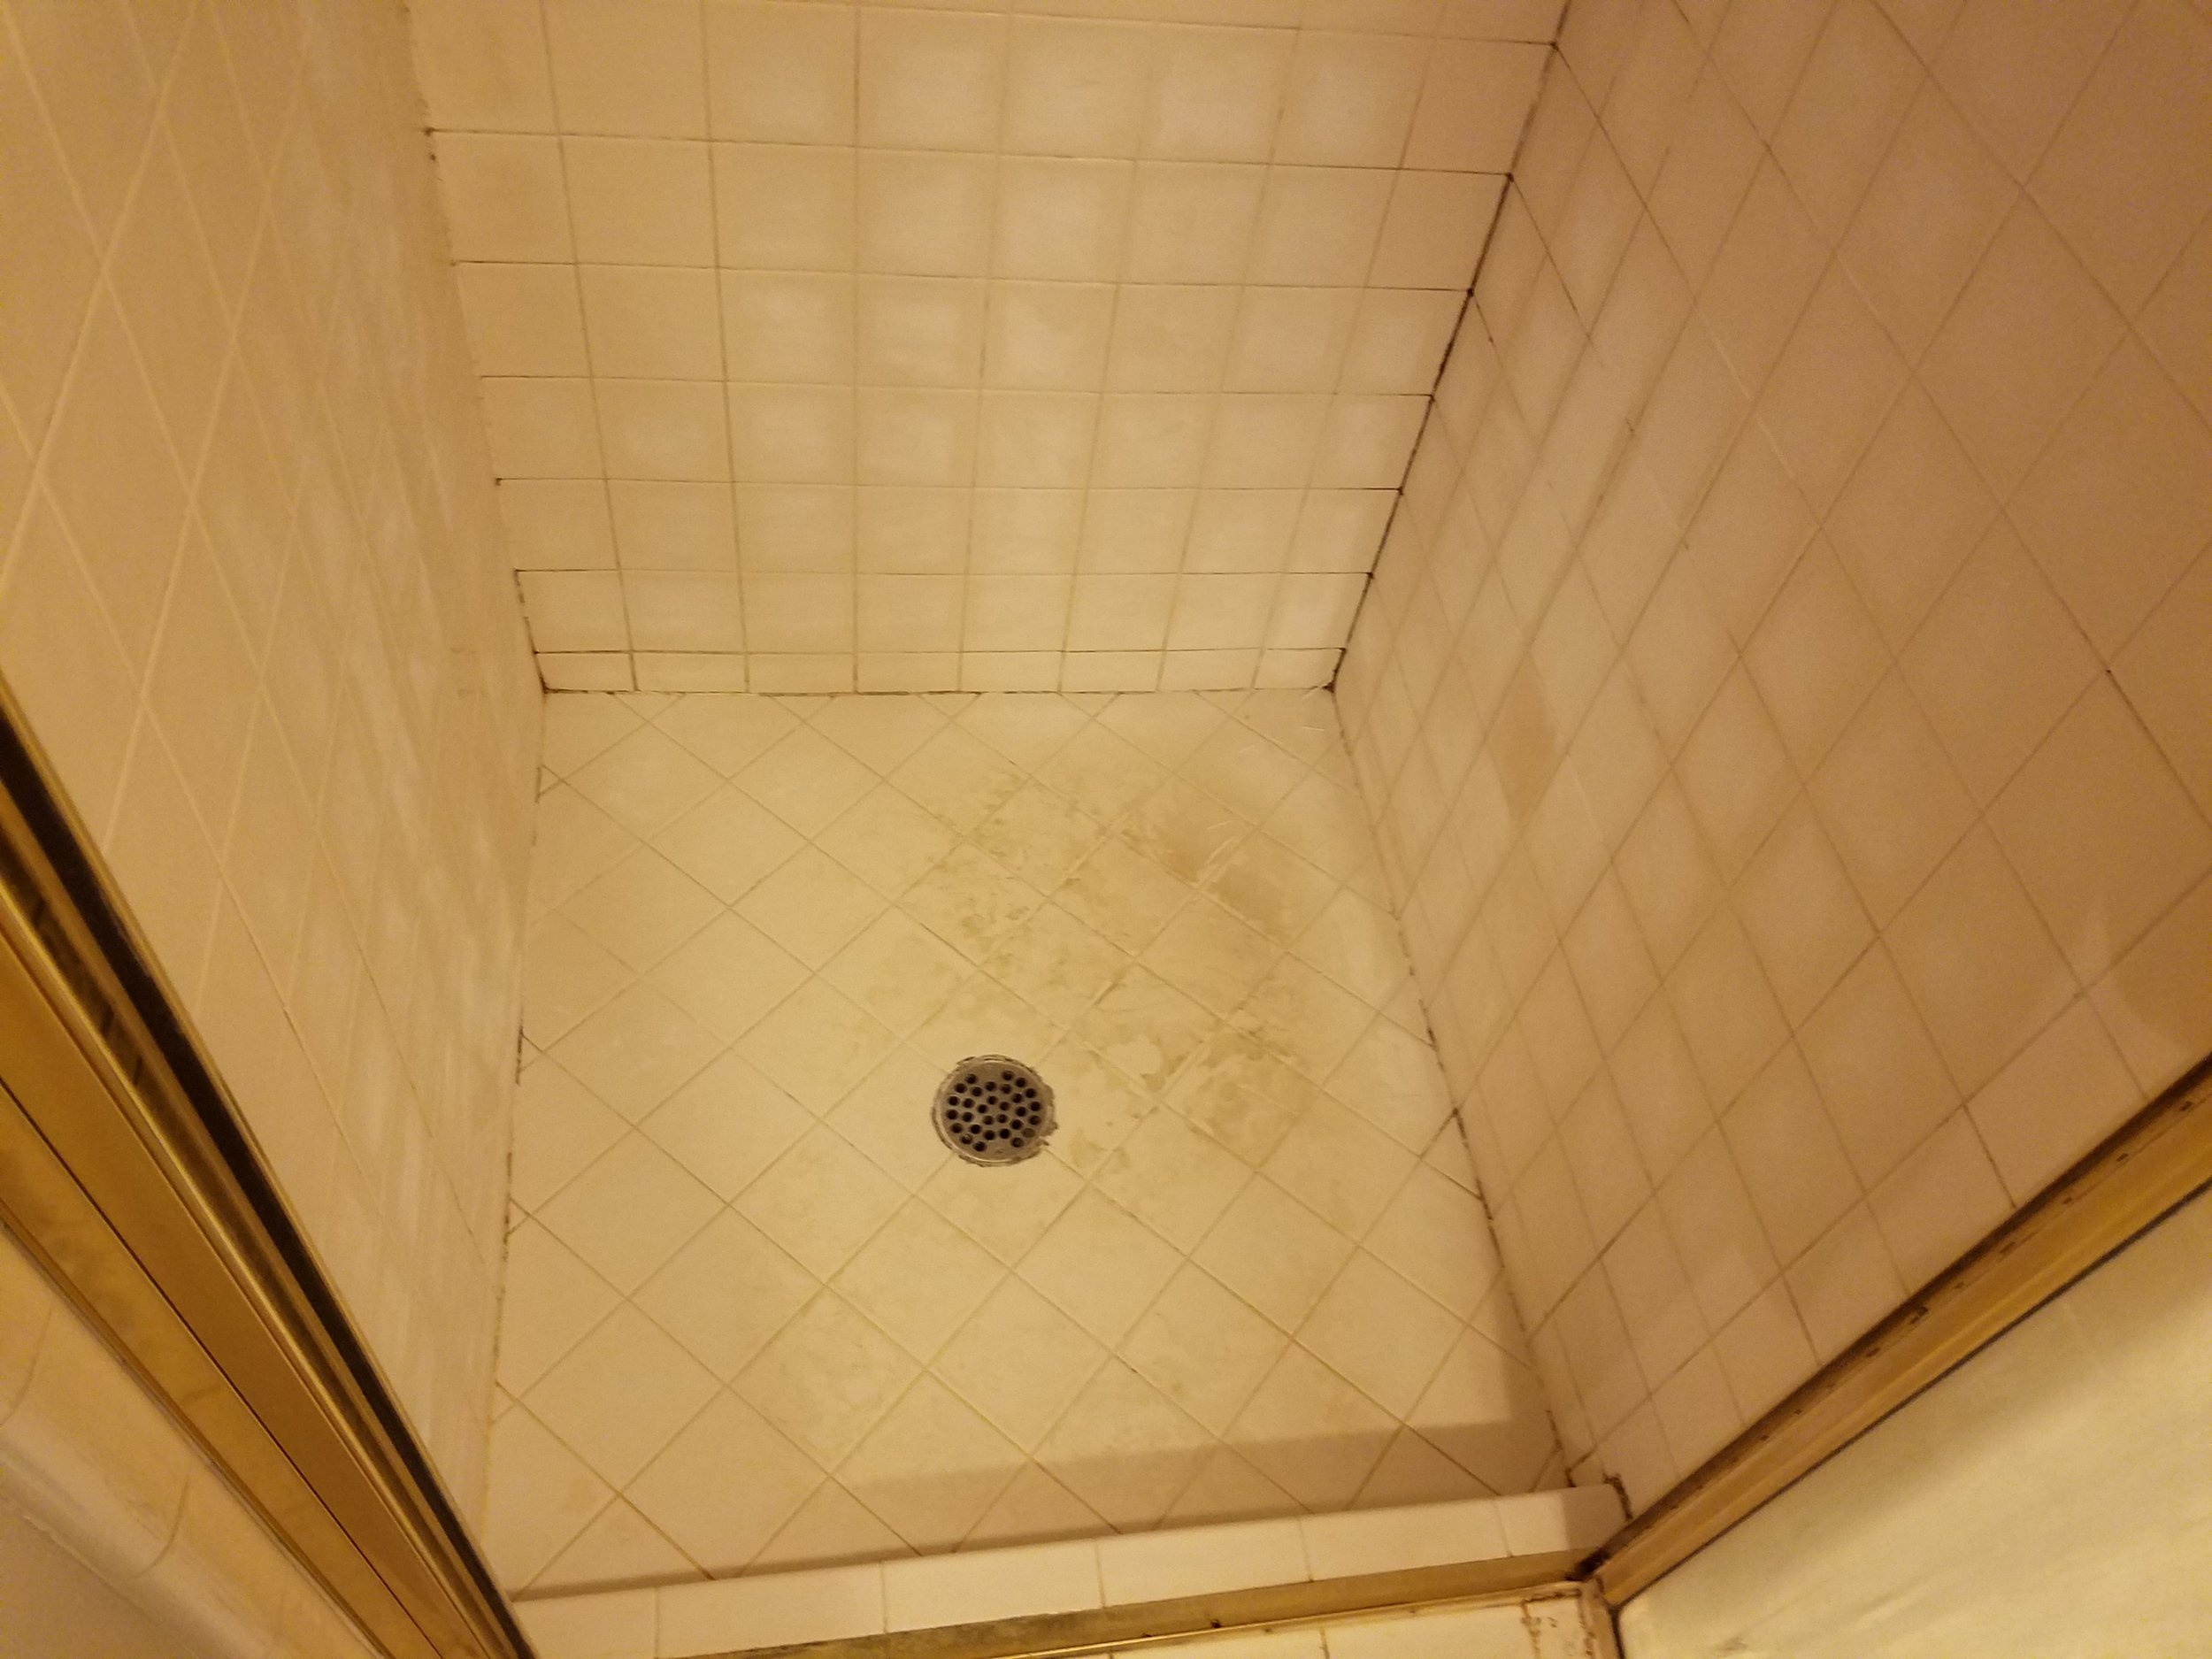 Notice the heavy soap scum build up on the walls and floor.